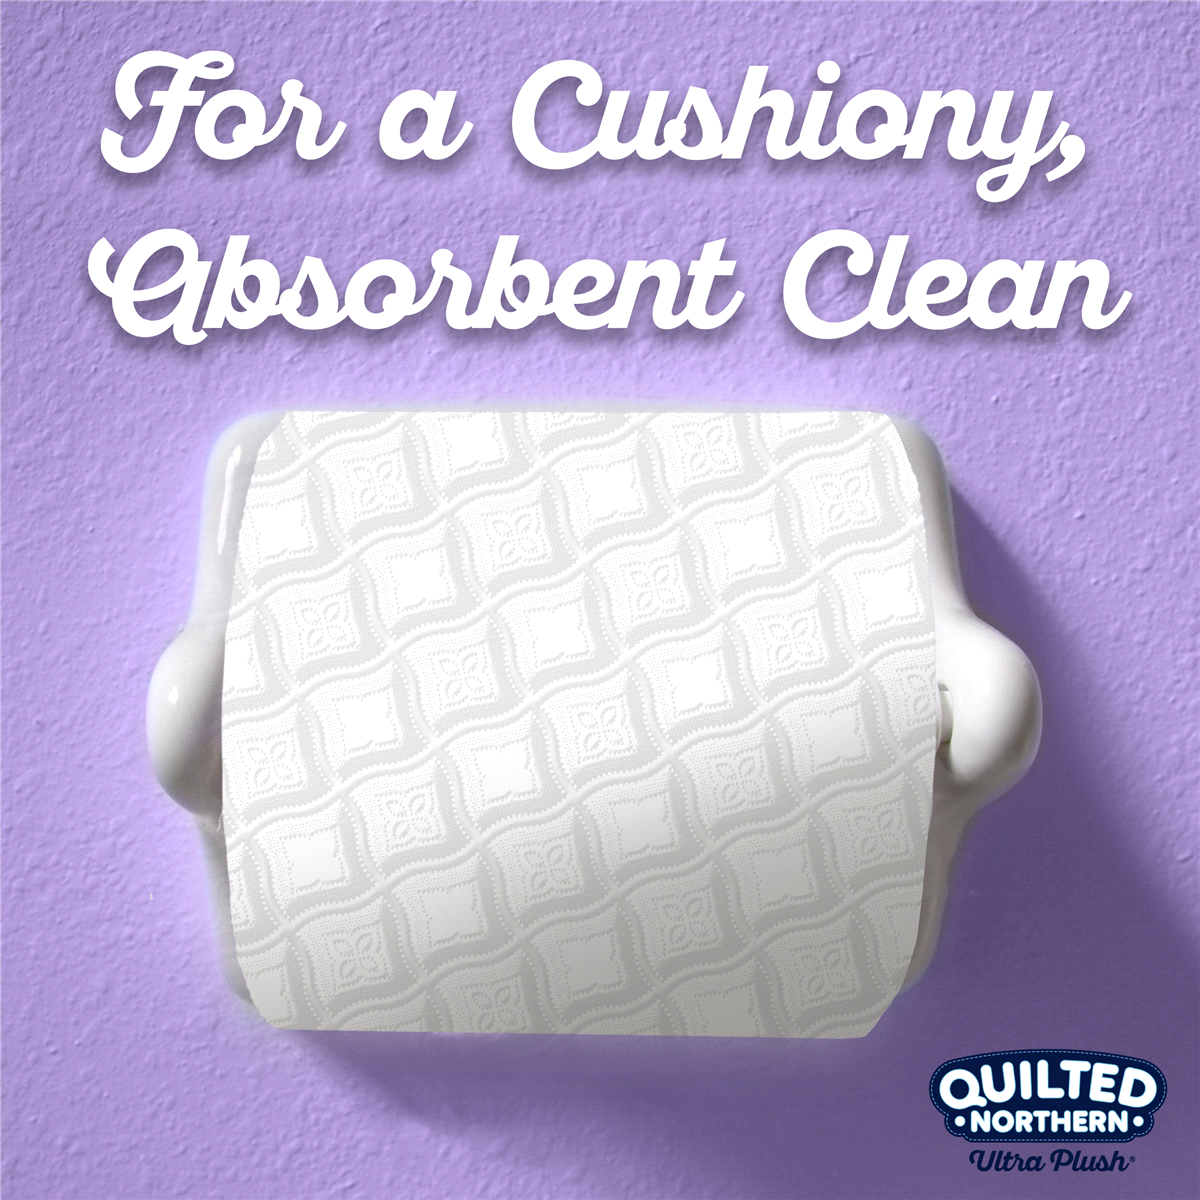 slide 5 of 6, Quilted Northern Ultra Plush Toilet Paper 6 Double Rolls,